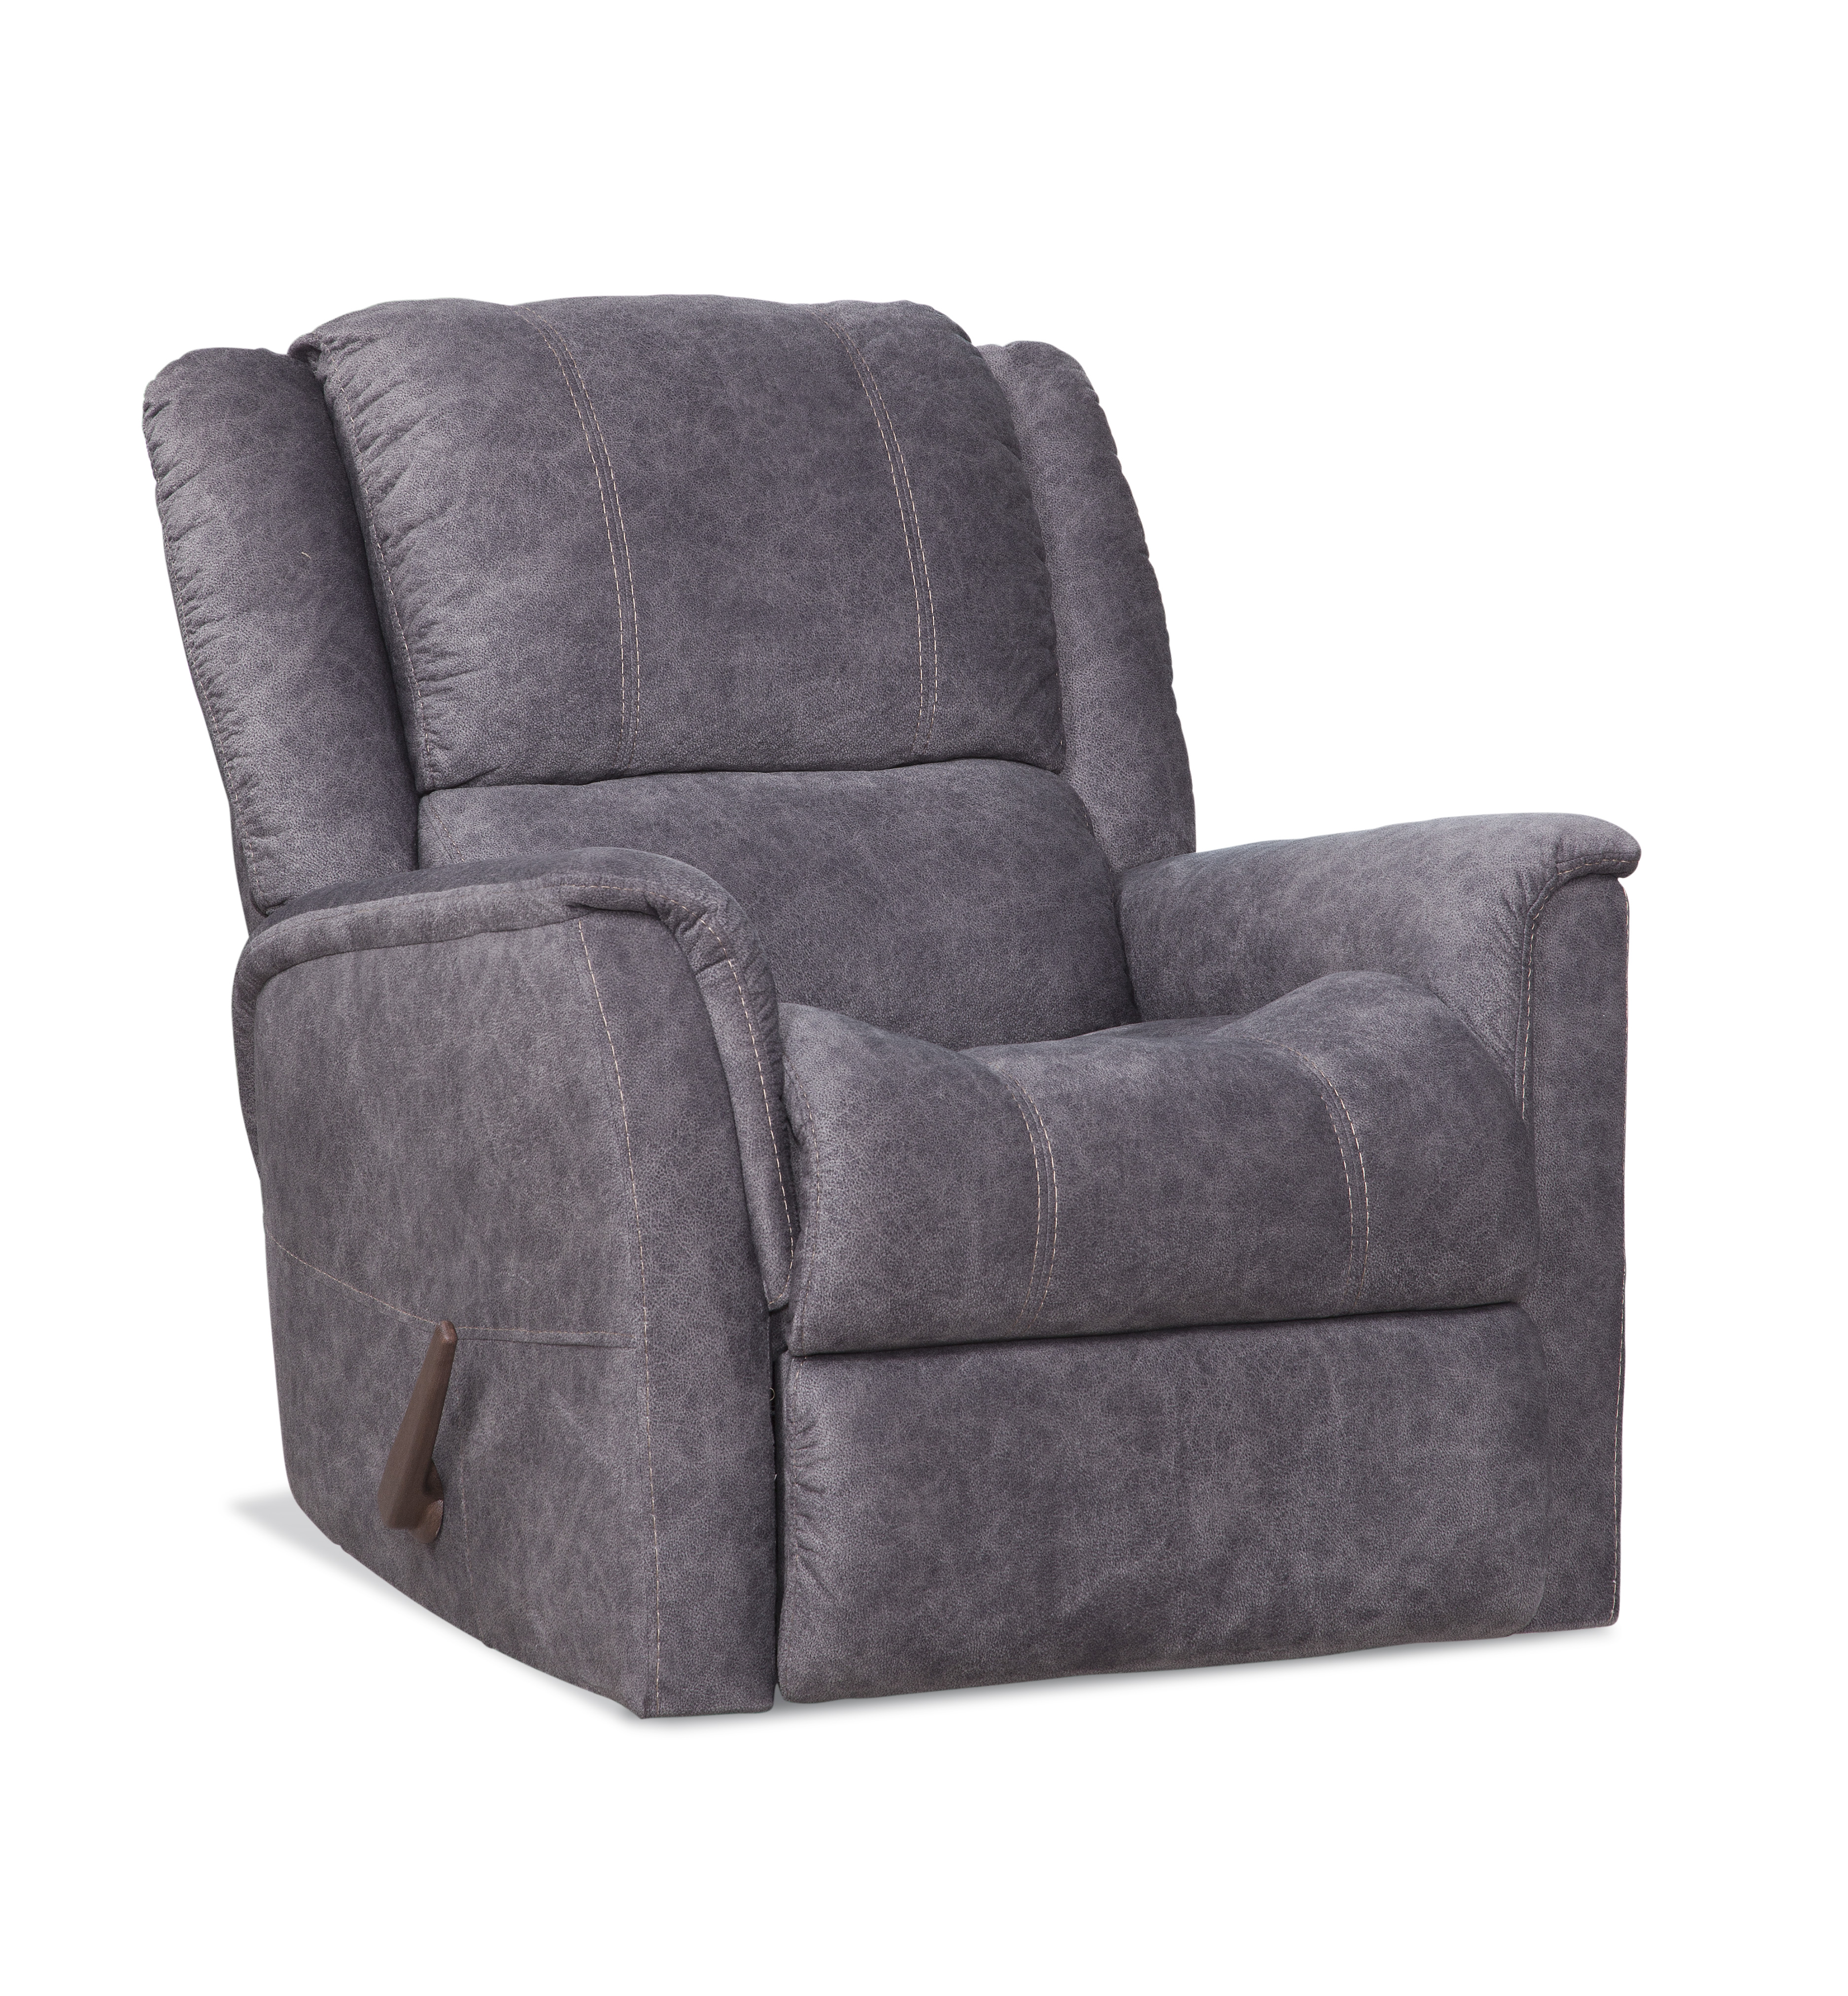 Stonebrook Pewter Recliner